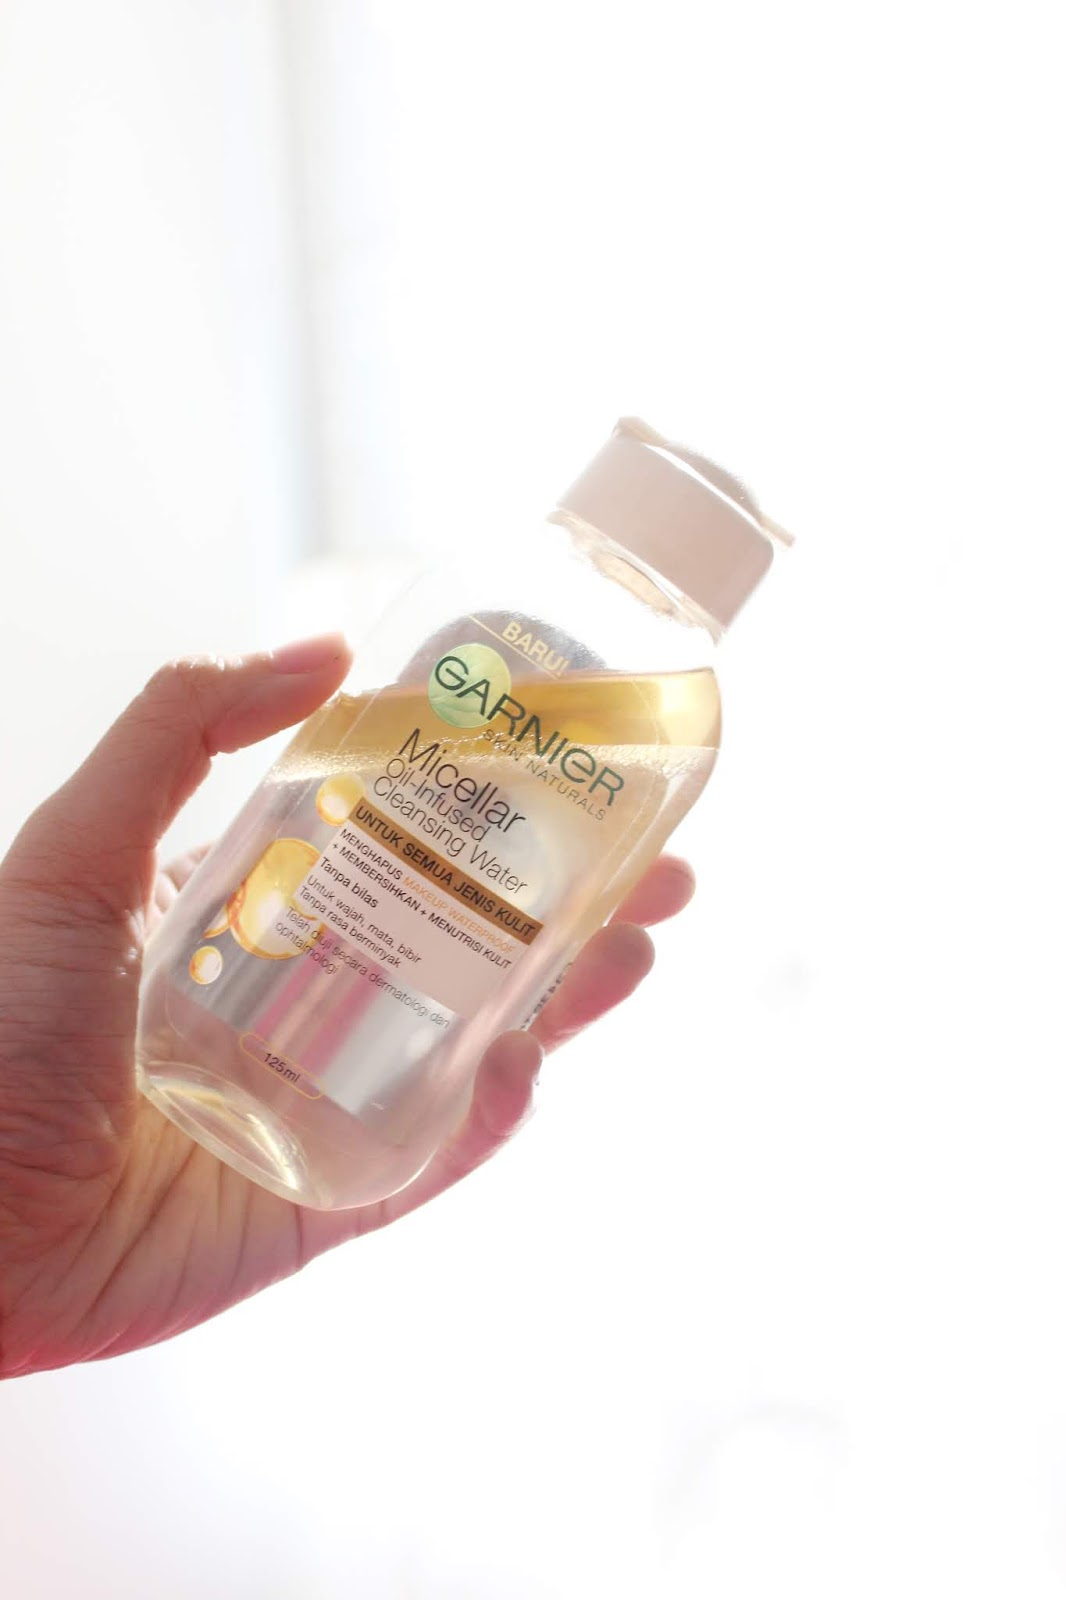 REVIEW: Garnier Micellar Oil-Infused Cleansing Water